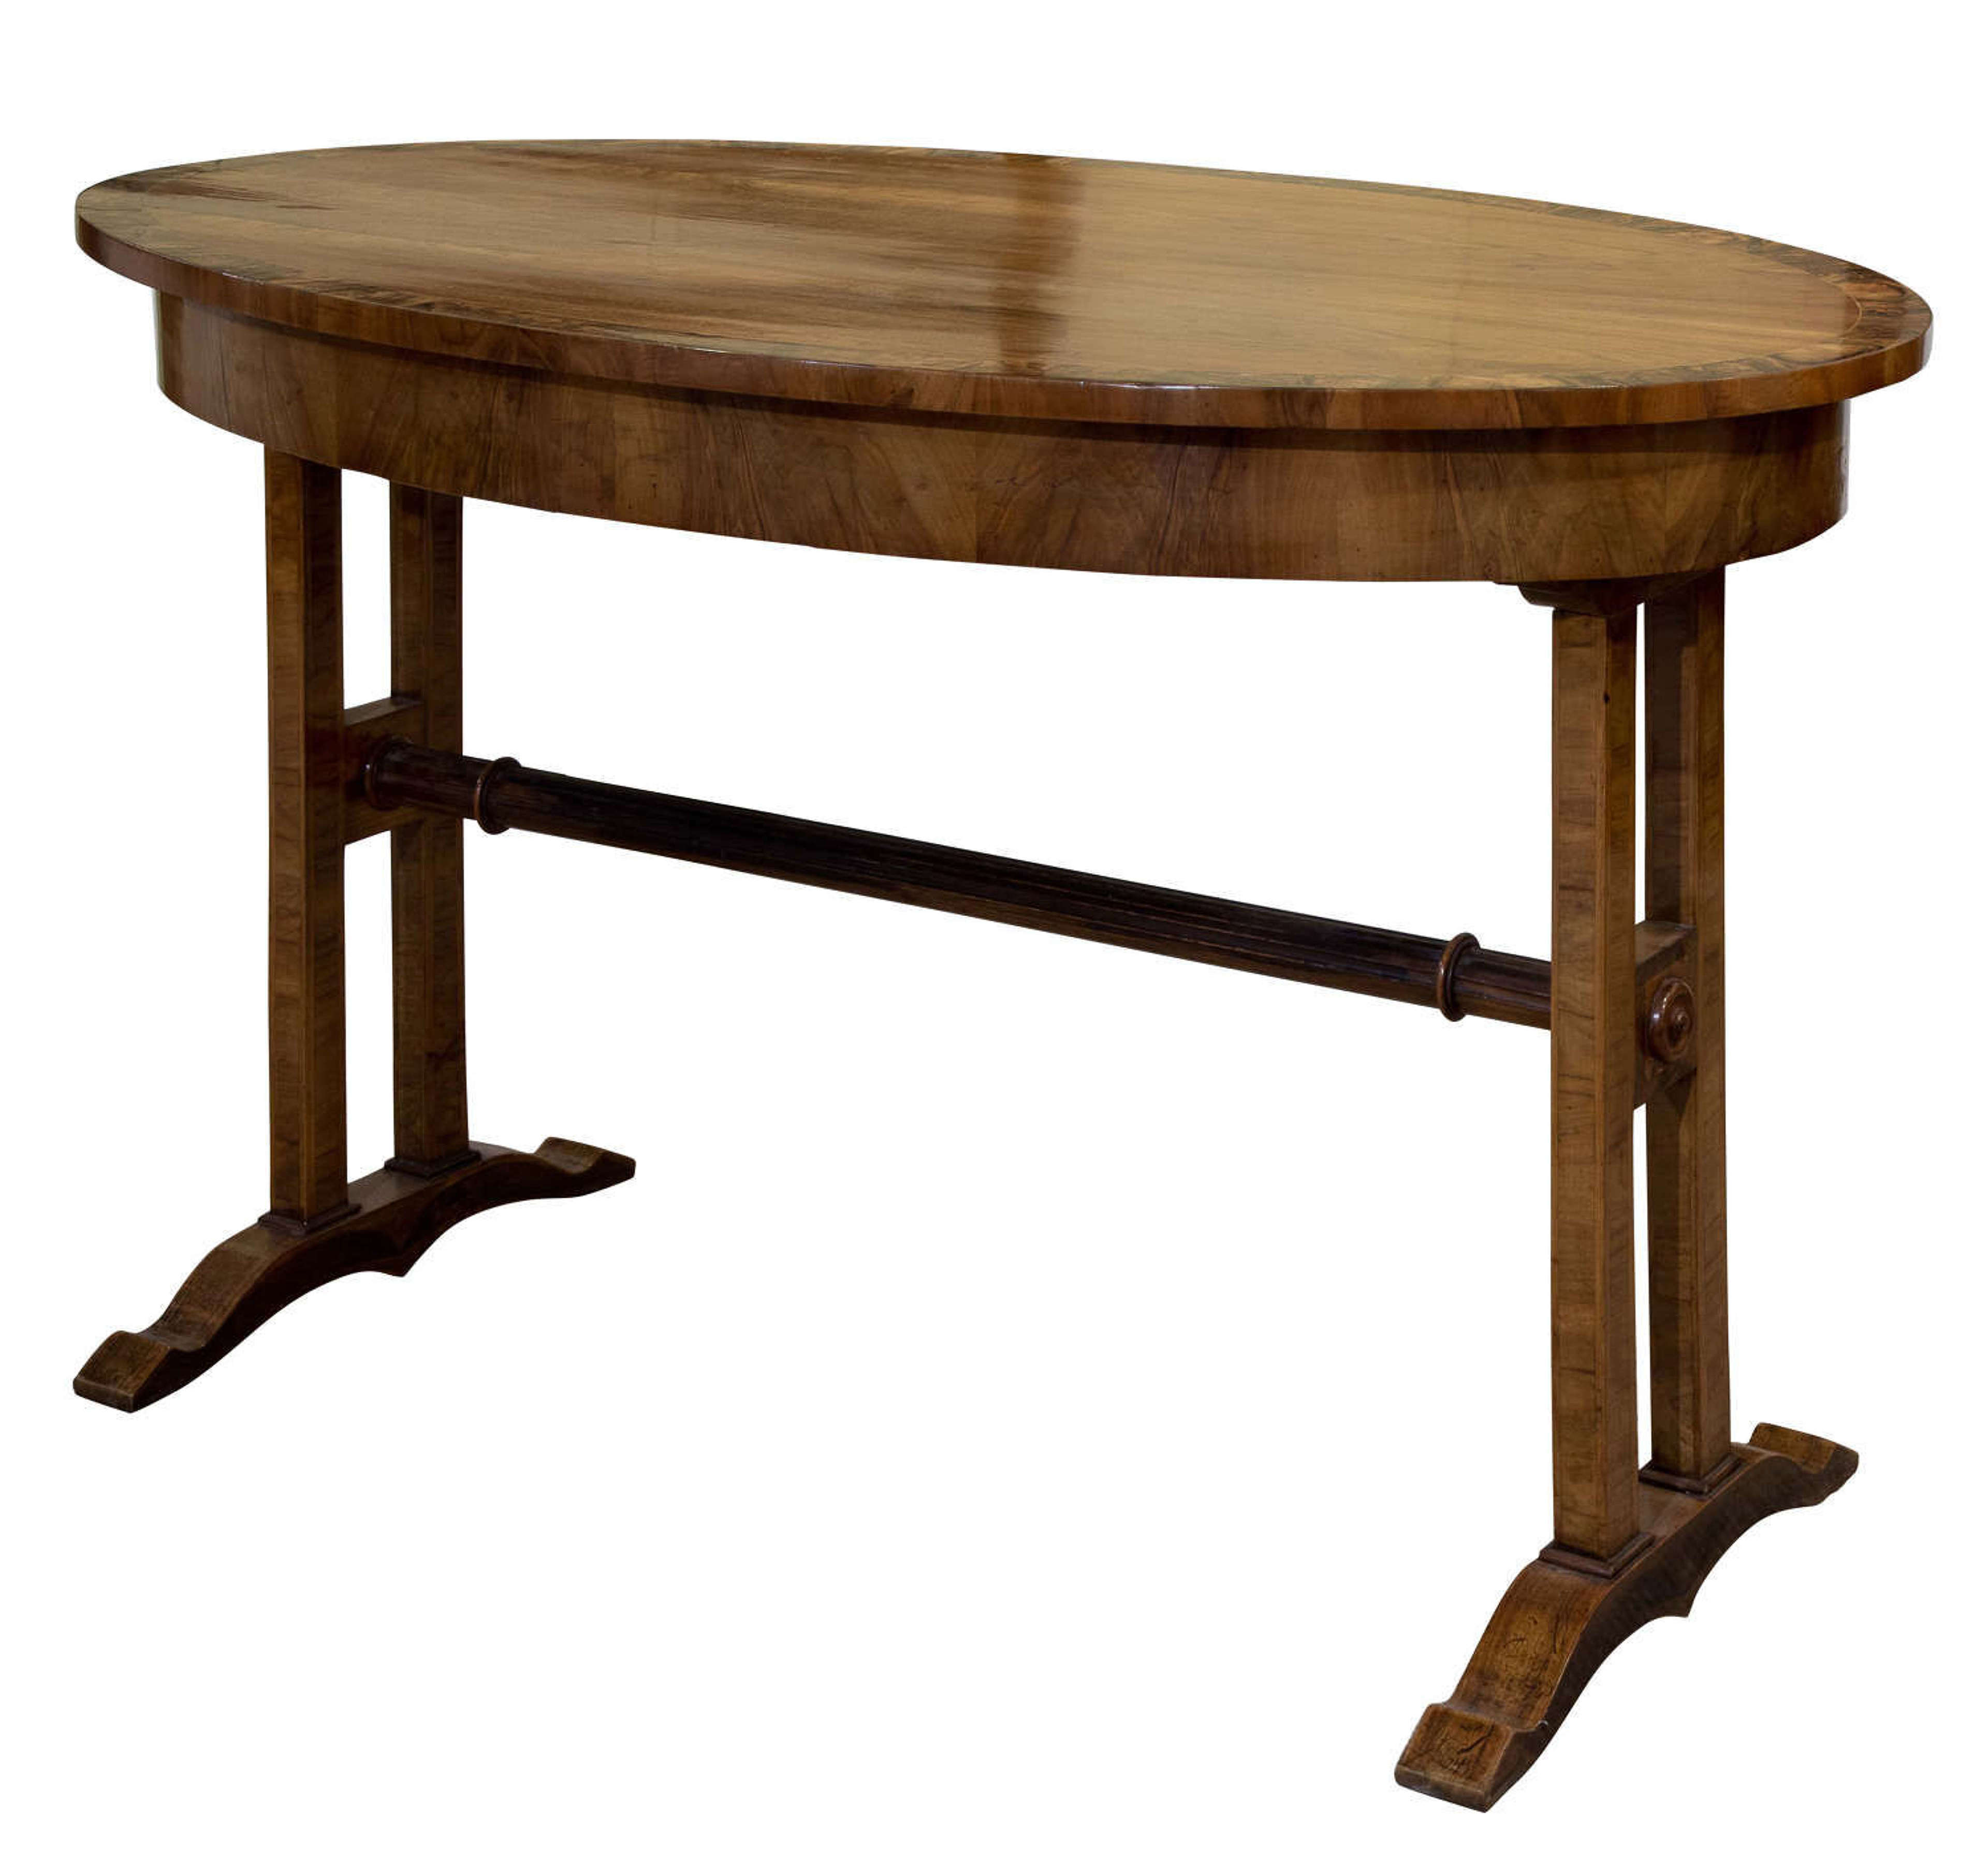 Walnut Empire style centre table with cross band edge